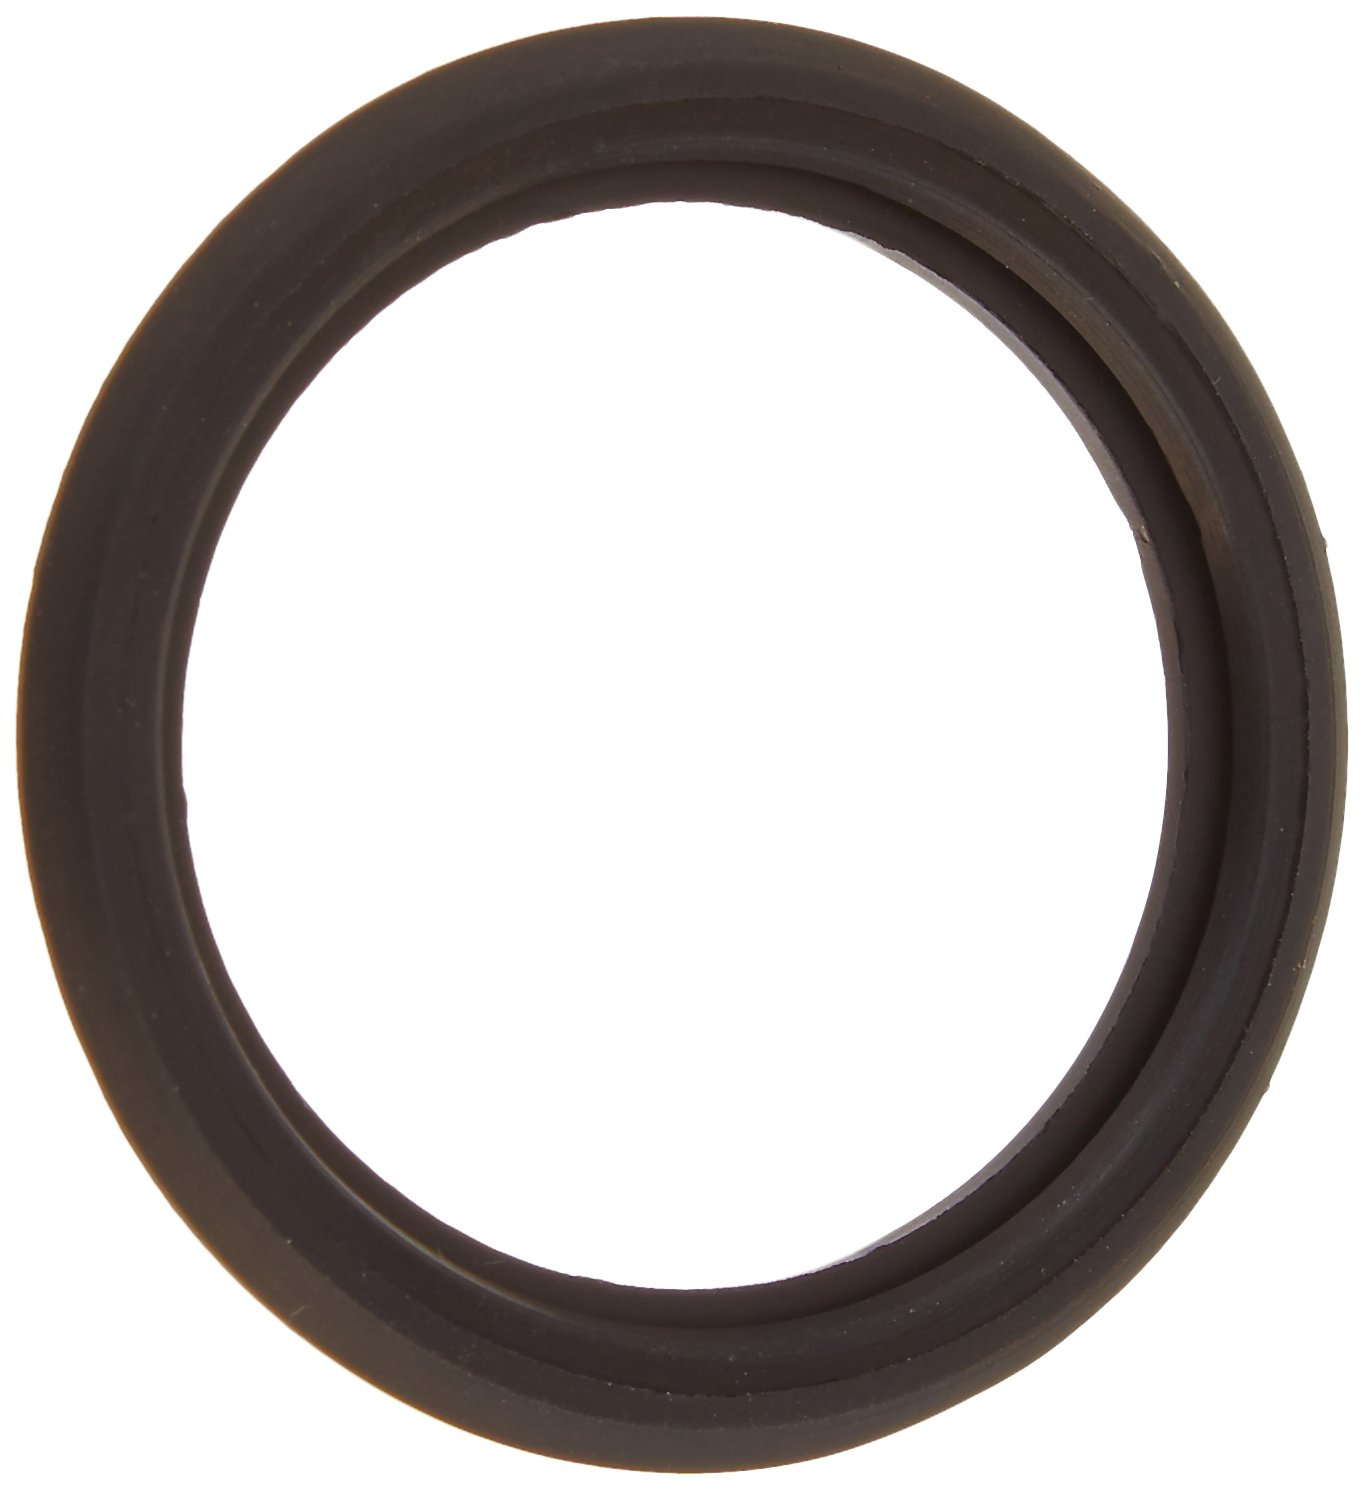 MAHLE Original C31301 Engine Coolant Thermostat Seal, 1 Pack MAHLE Aftermarket VGC31301